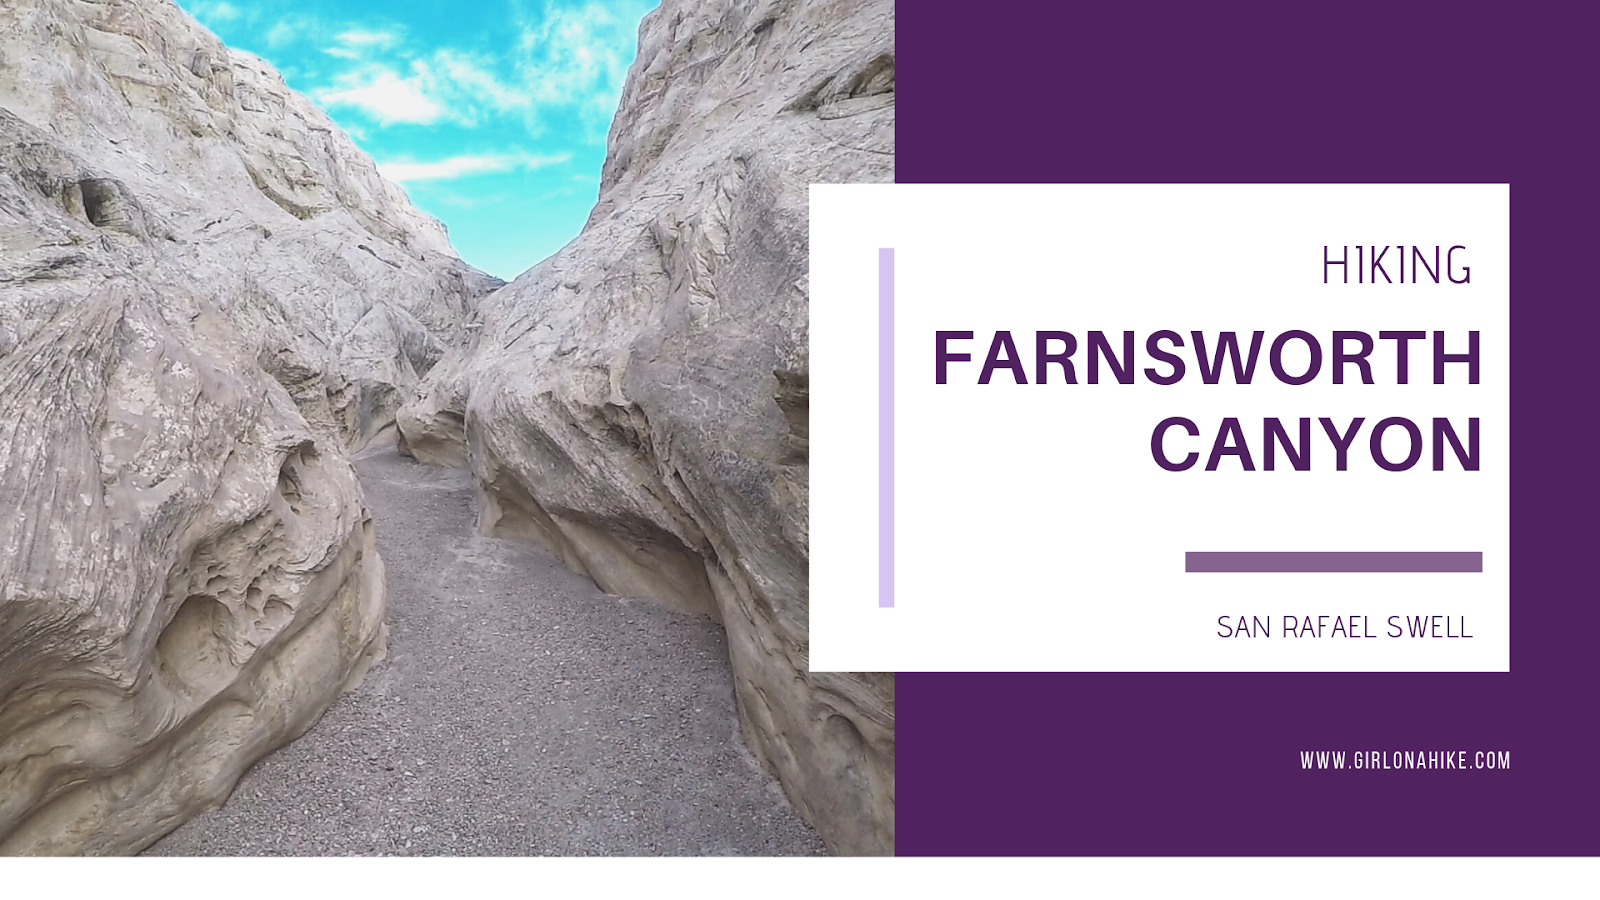 Hiking Farnsworth Canyon, San Rafael Swell